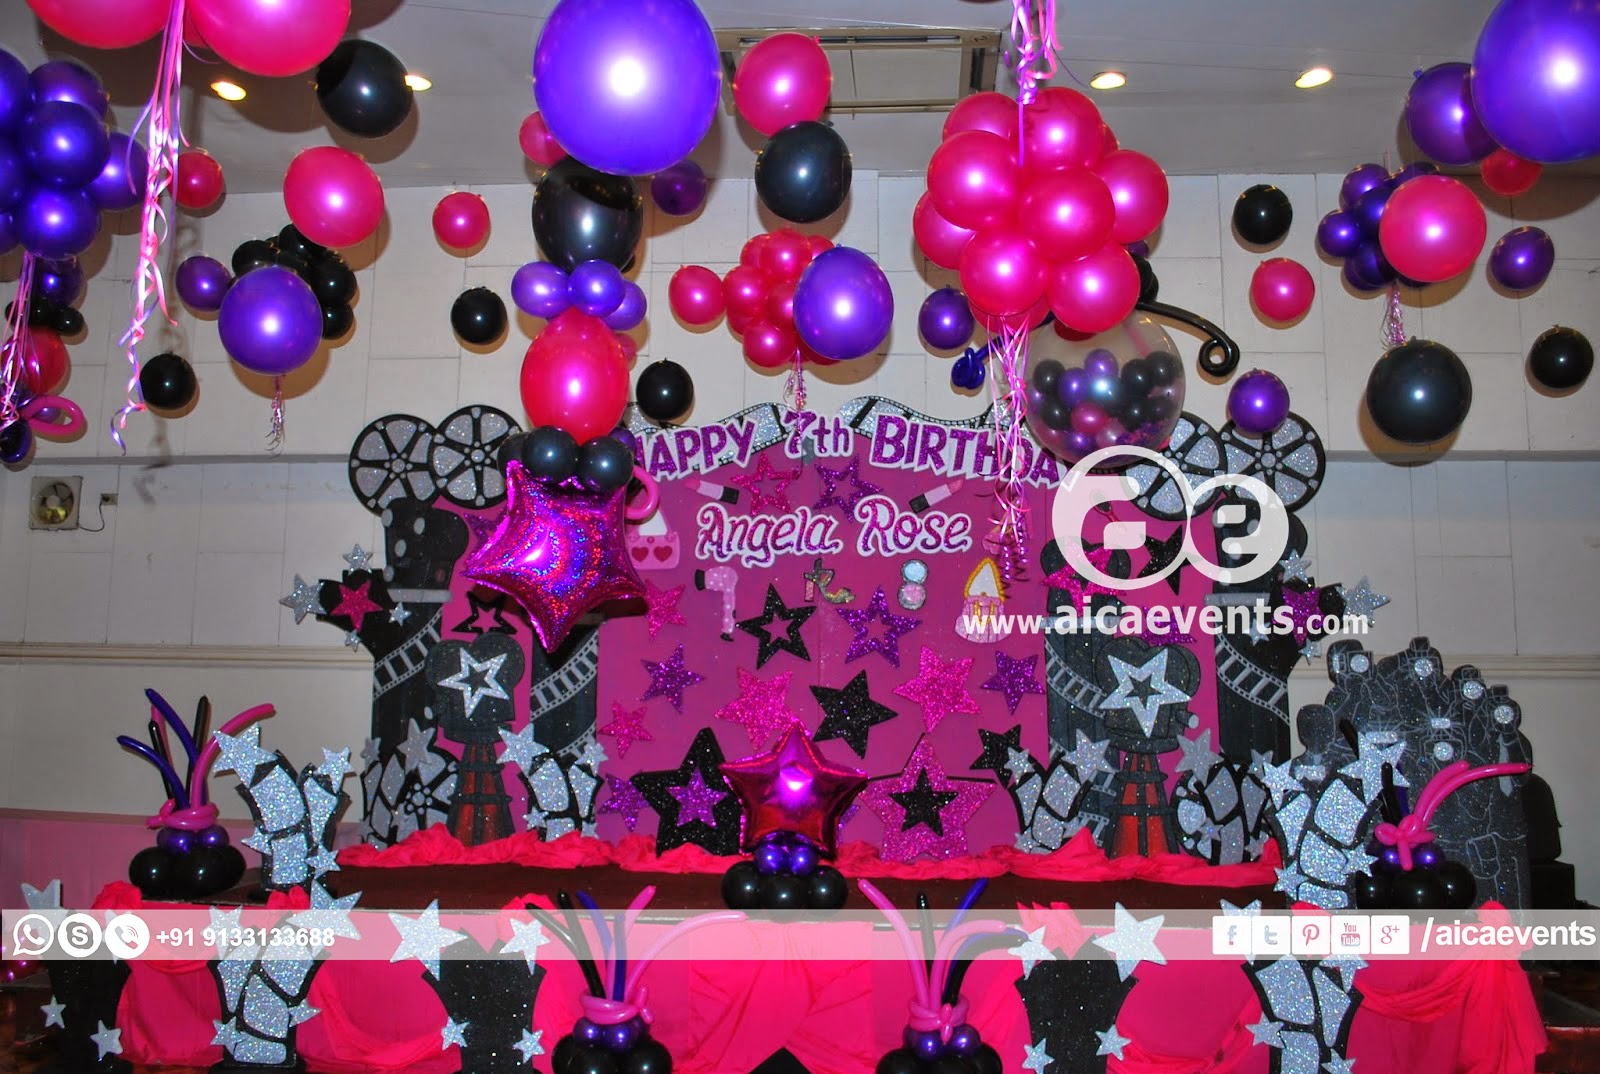 aicaevents stars theme birthday party decorations